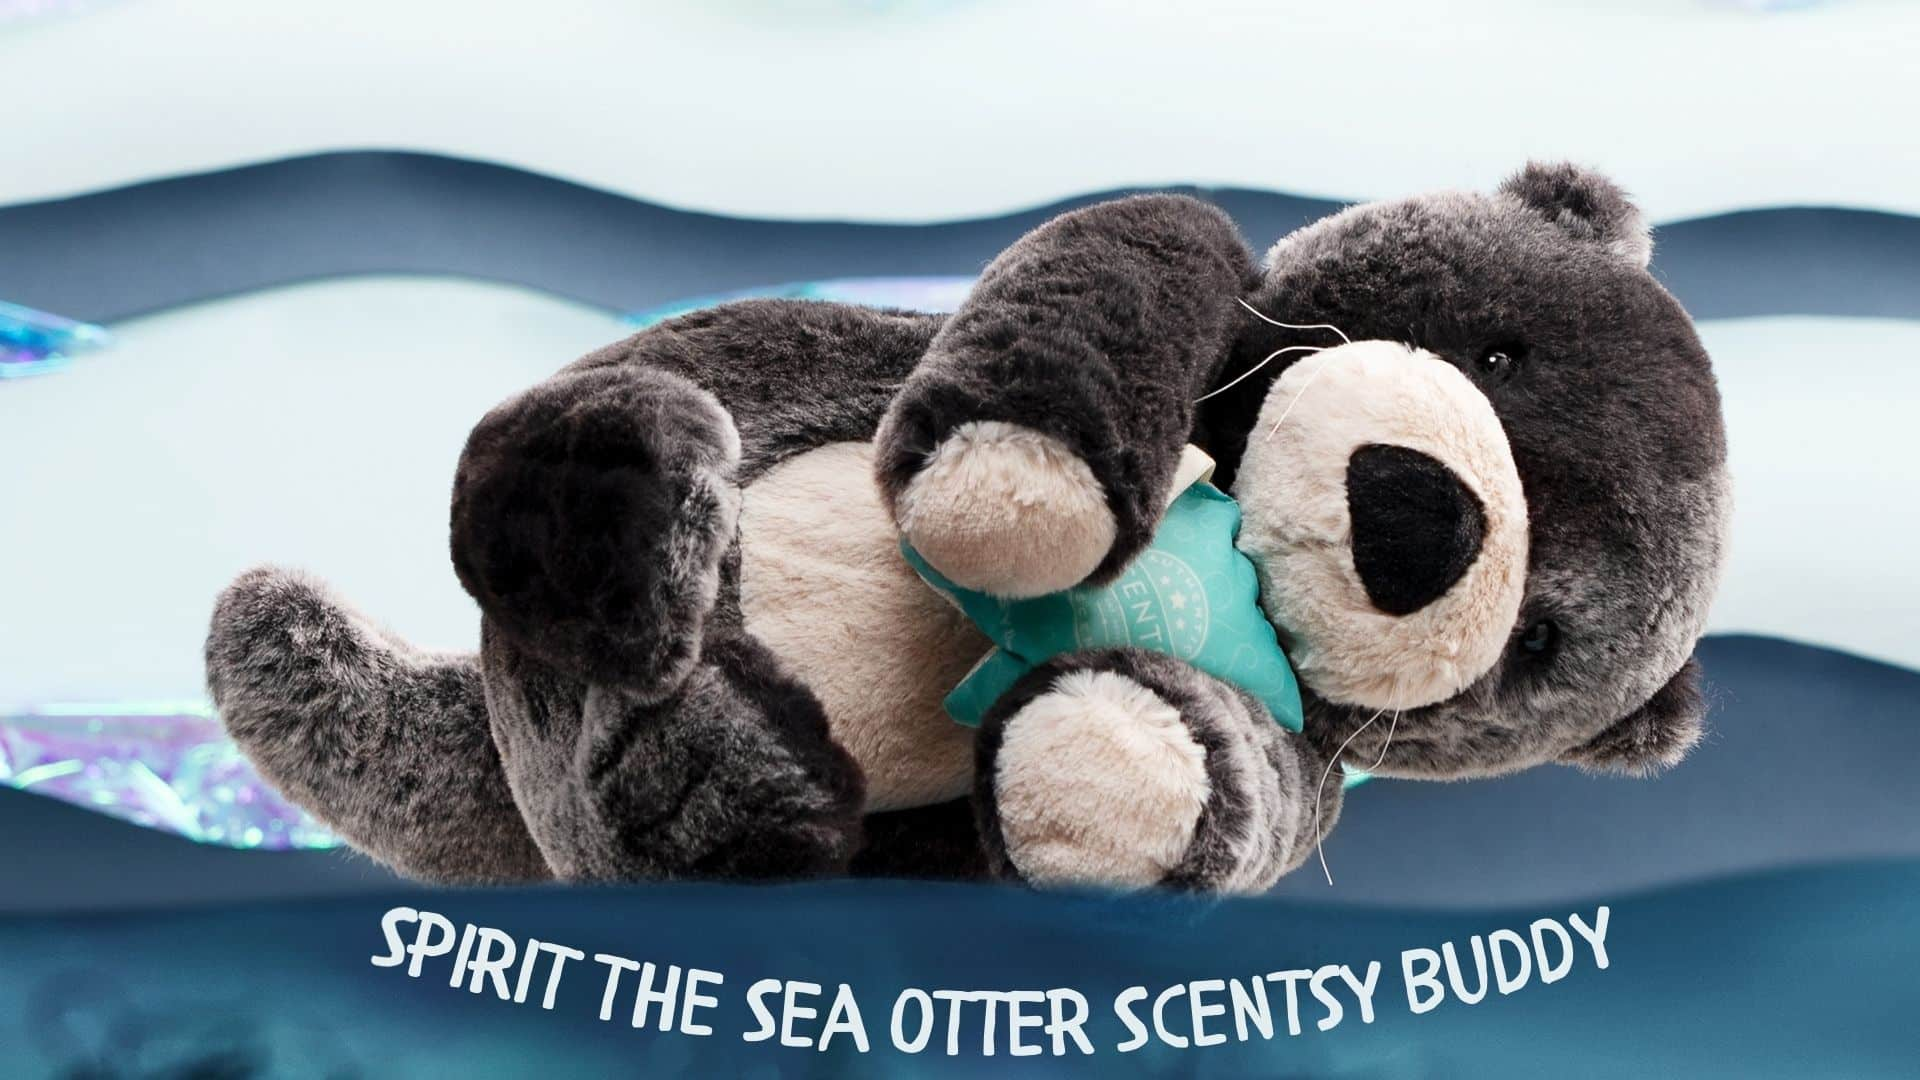 SPIRIT THE SEA OTTER SCENTSY BUDDY 2021